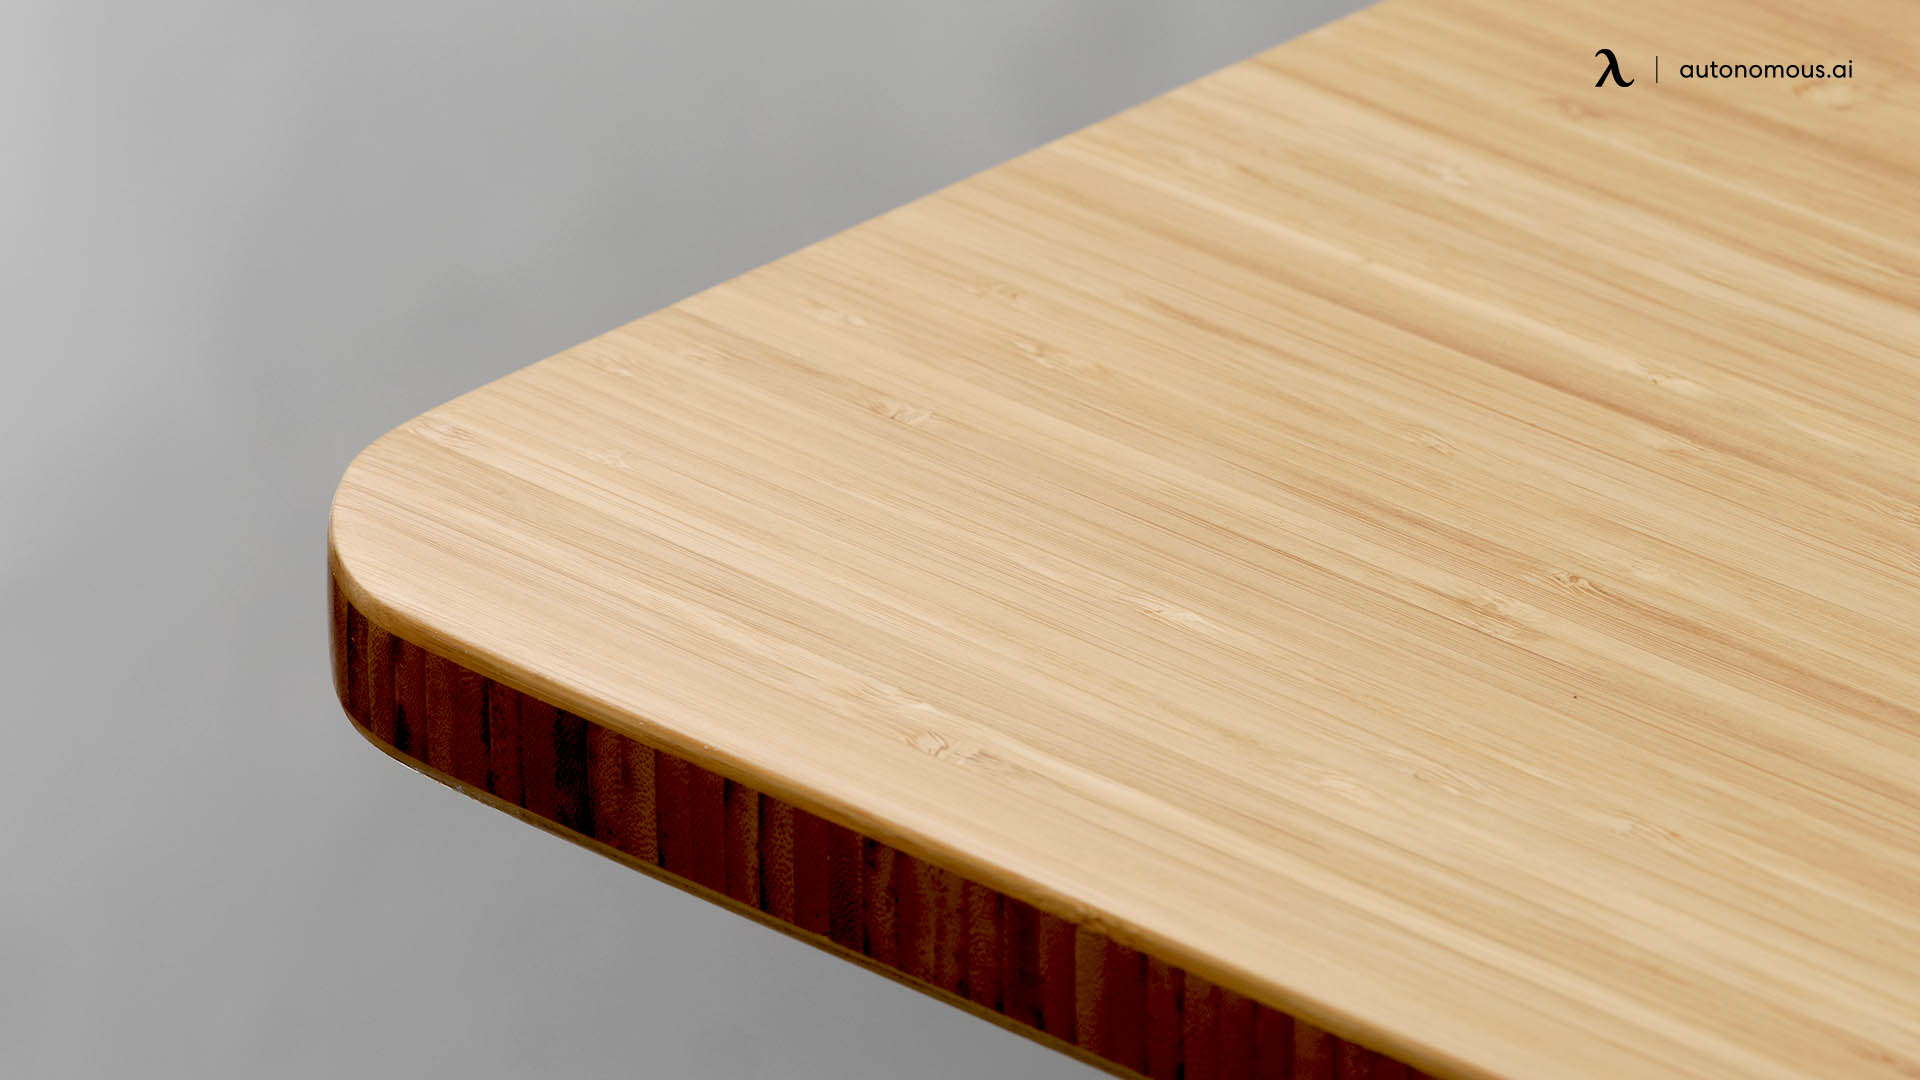 Bamboo- the wood of choice